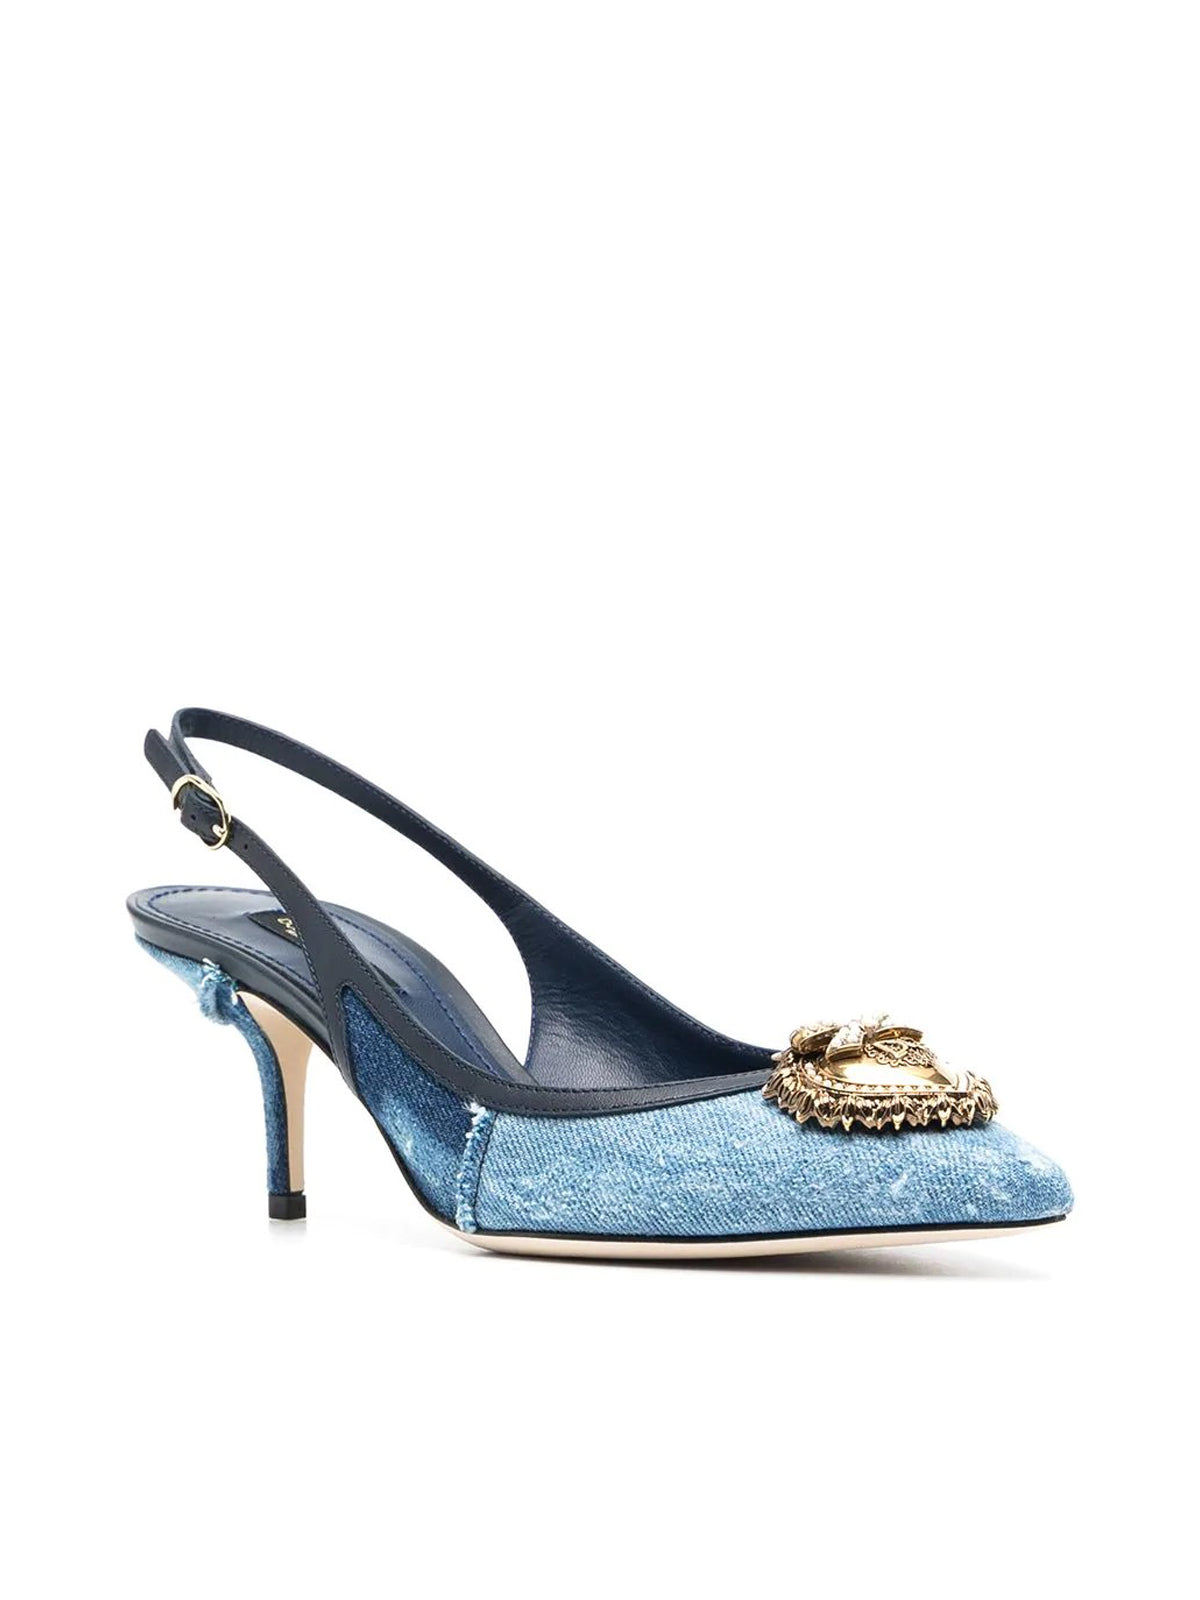 Devotion 70mm denim slingback pumps